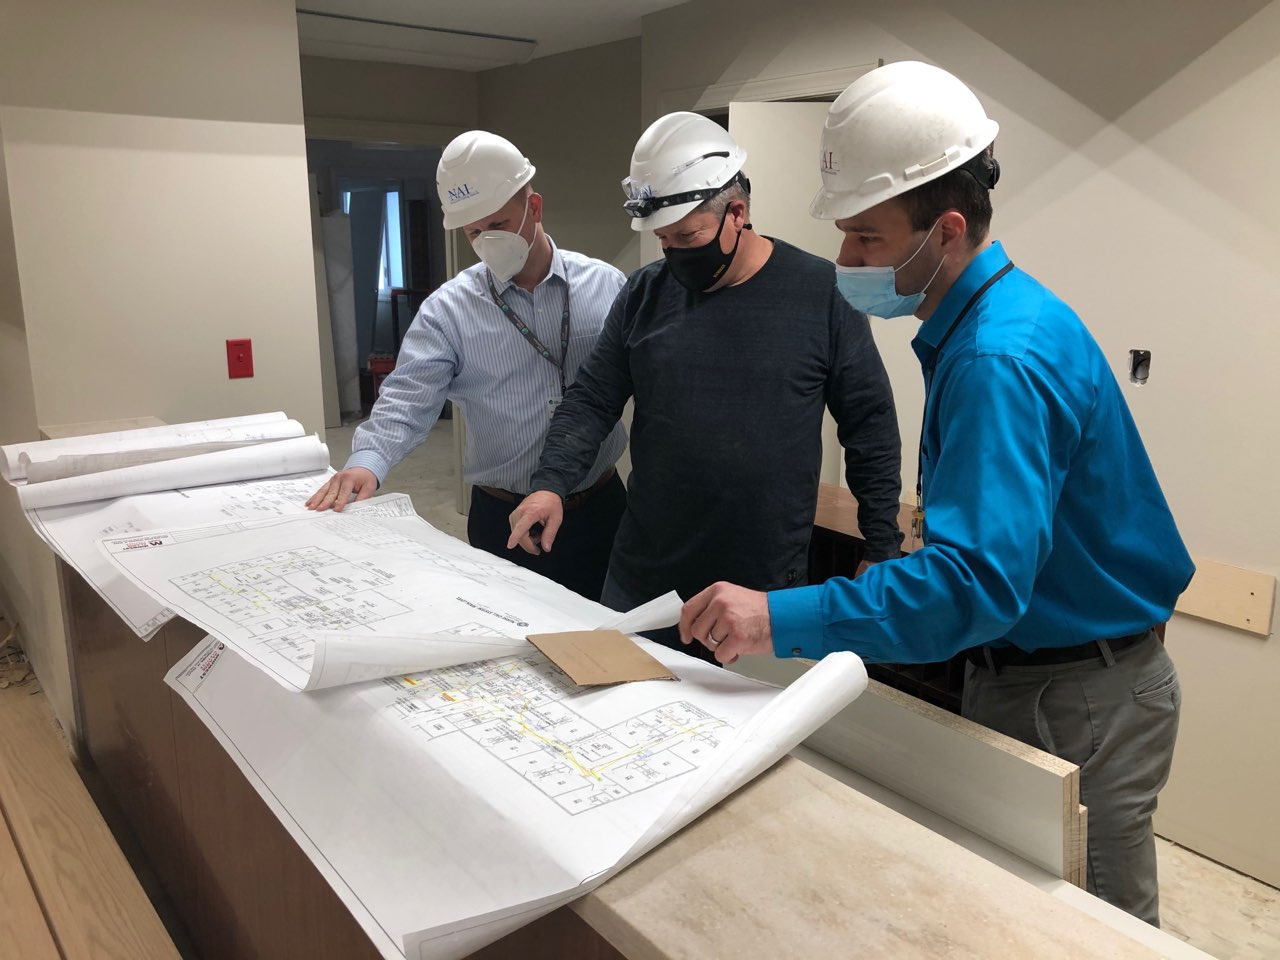 overlooking plans to rebuild Heritage Specialty Care after derecho